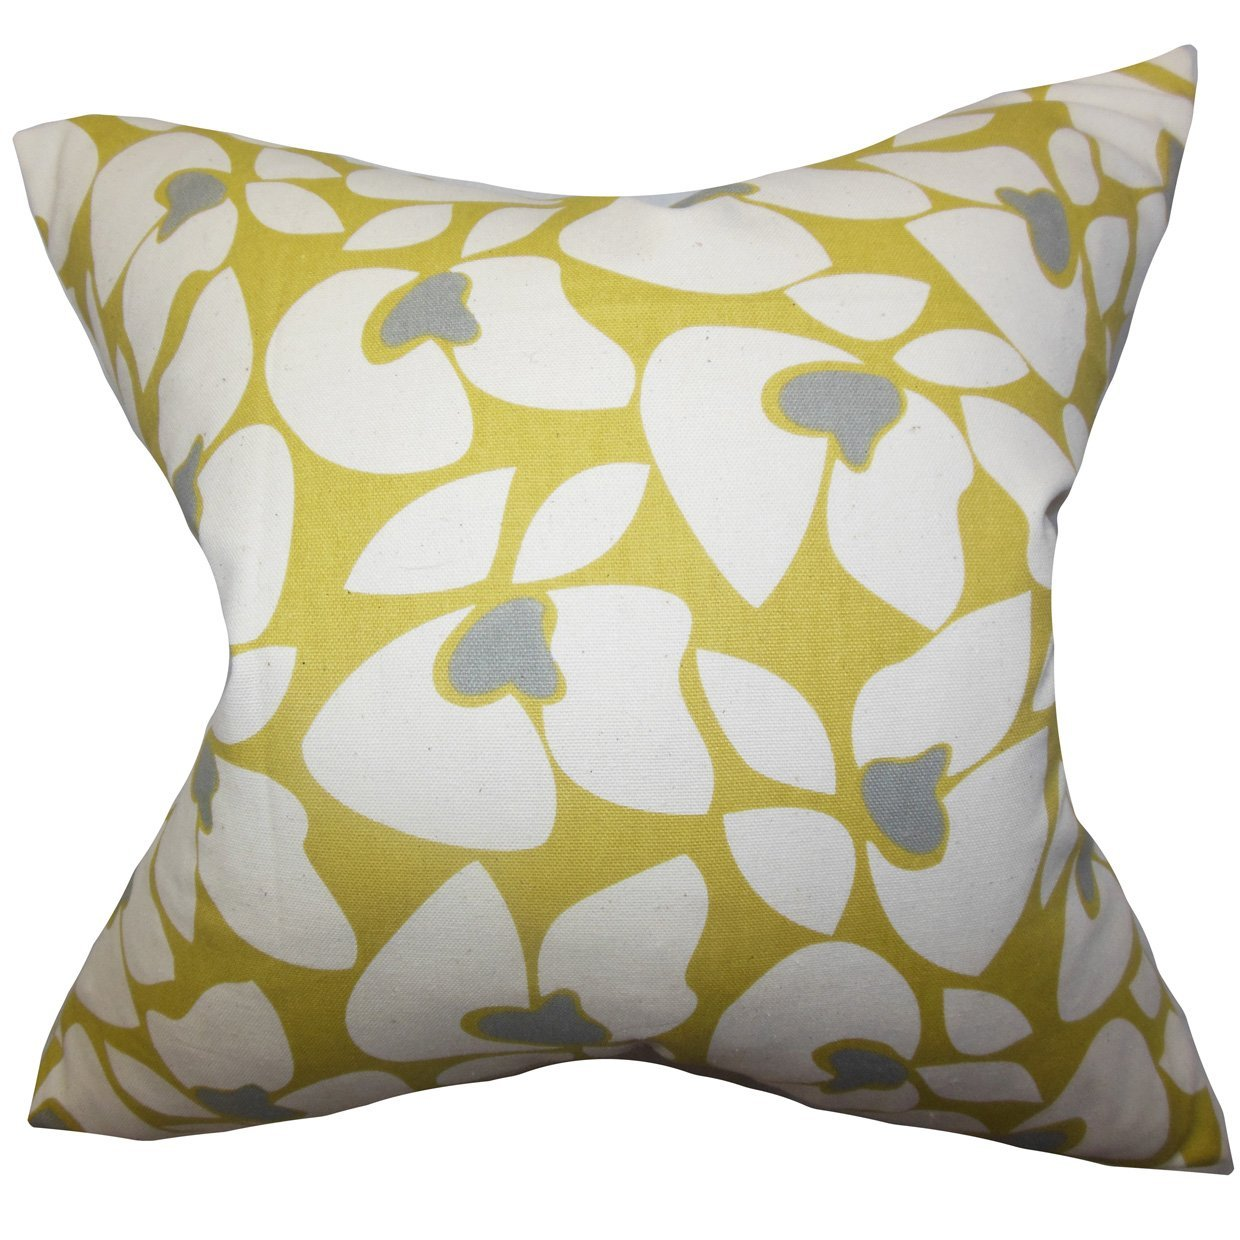 King//20 x 36 The Pillow Collection Zaza Geometric Bedding Sham Yellow